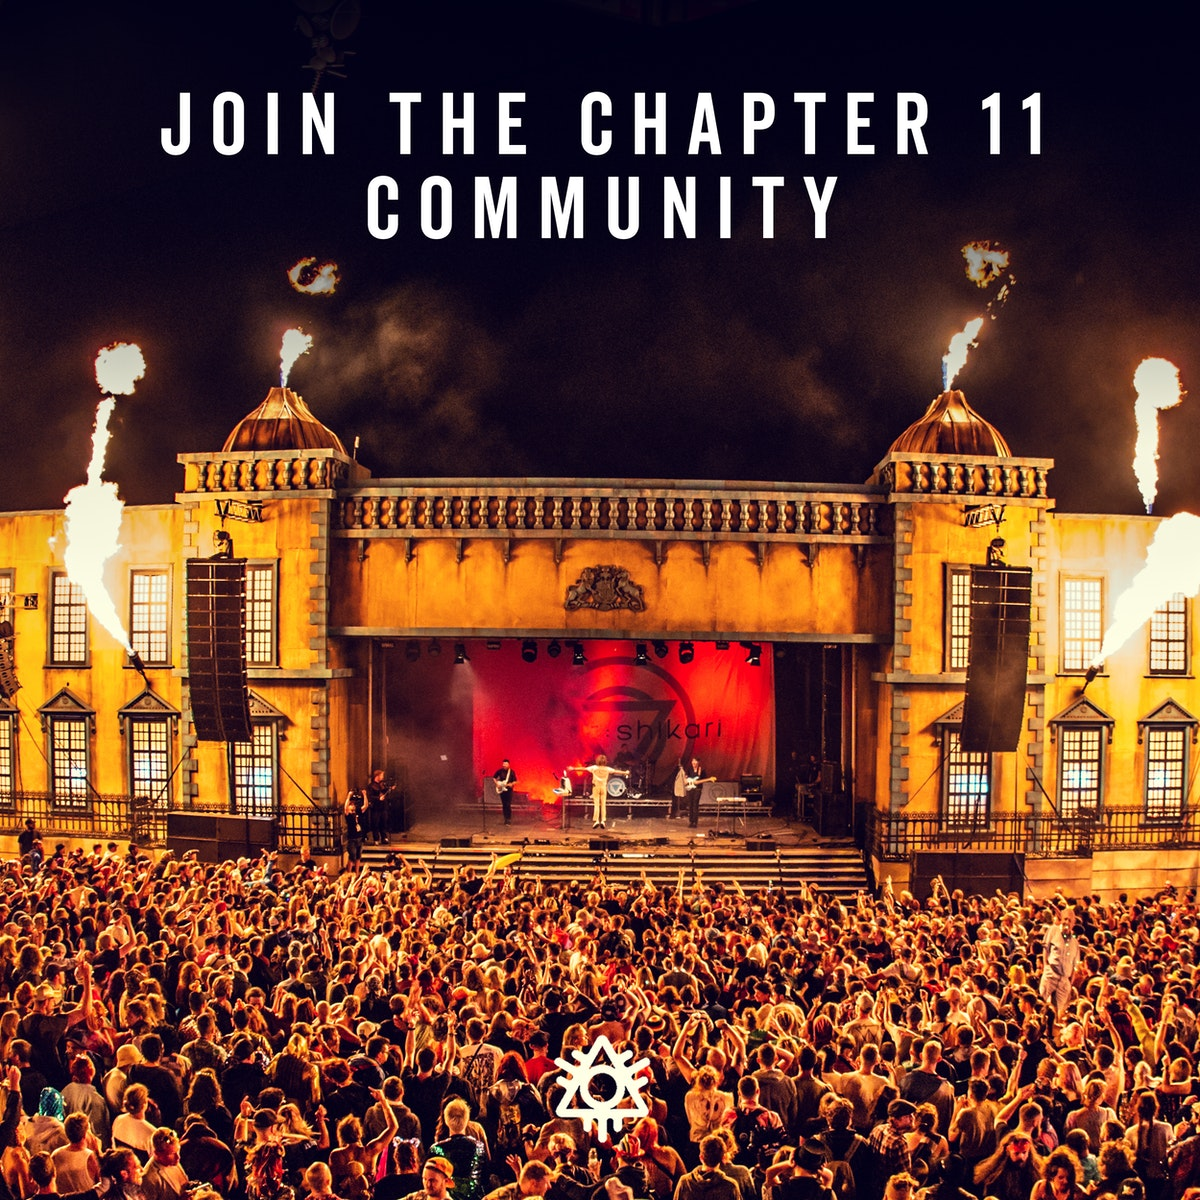 Join the Chapter 11 Community...